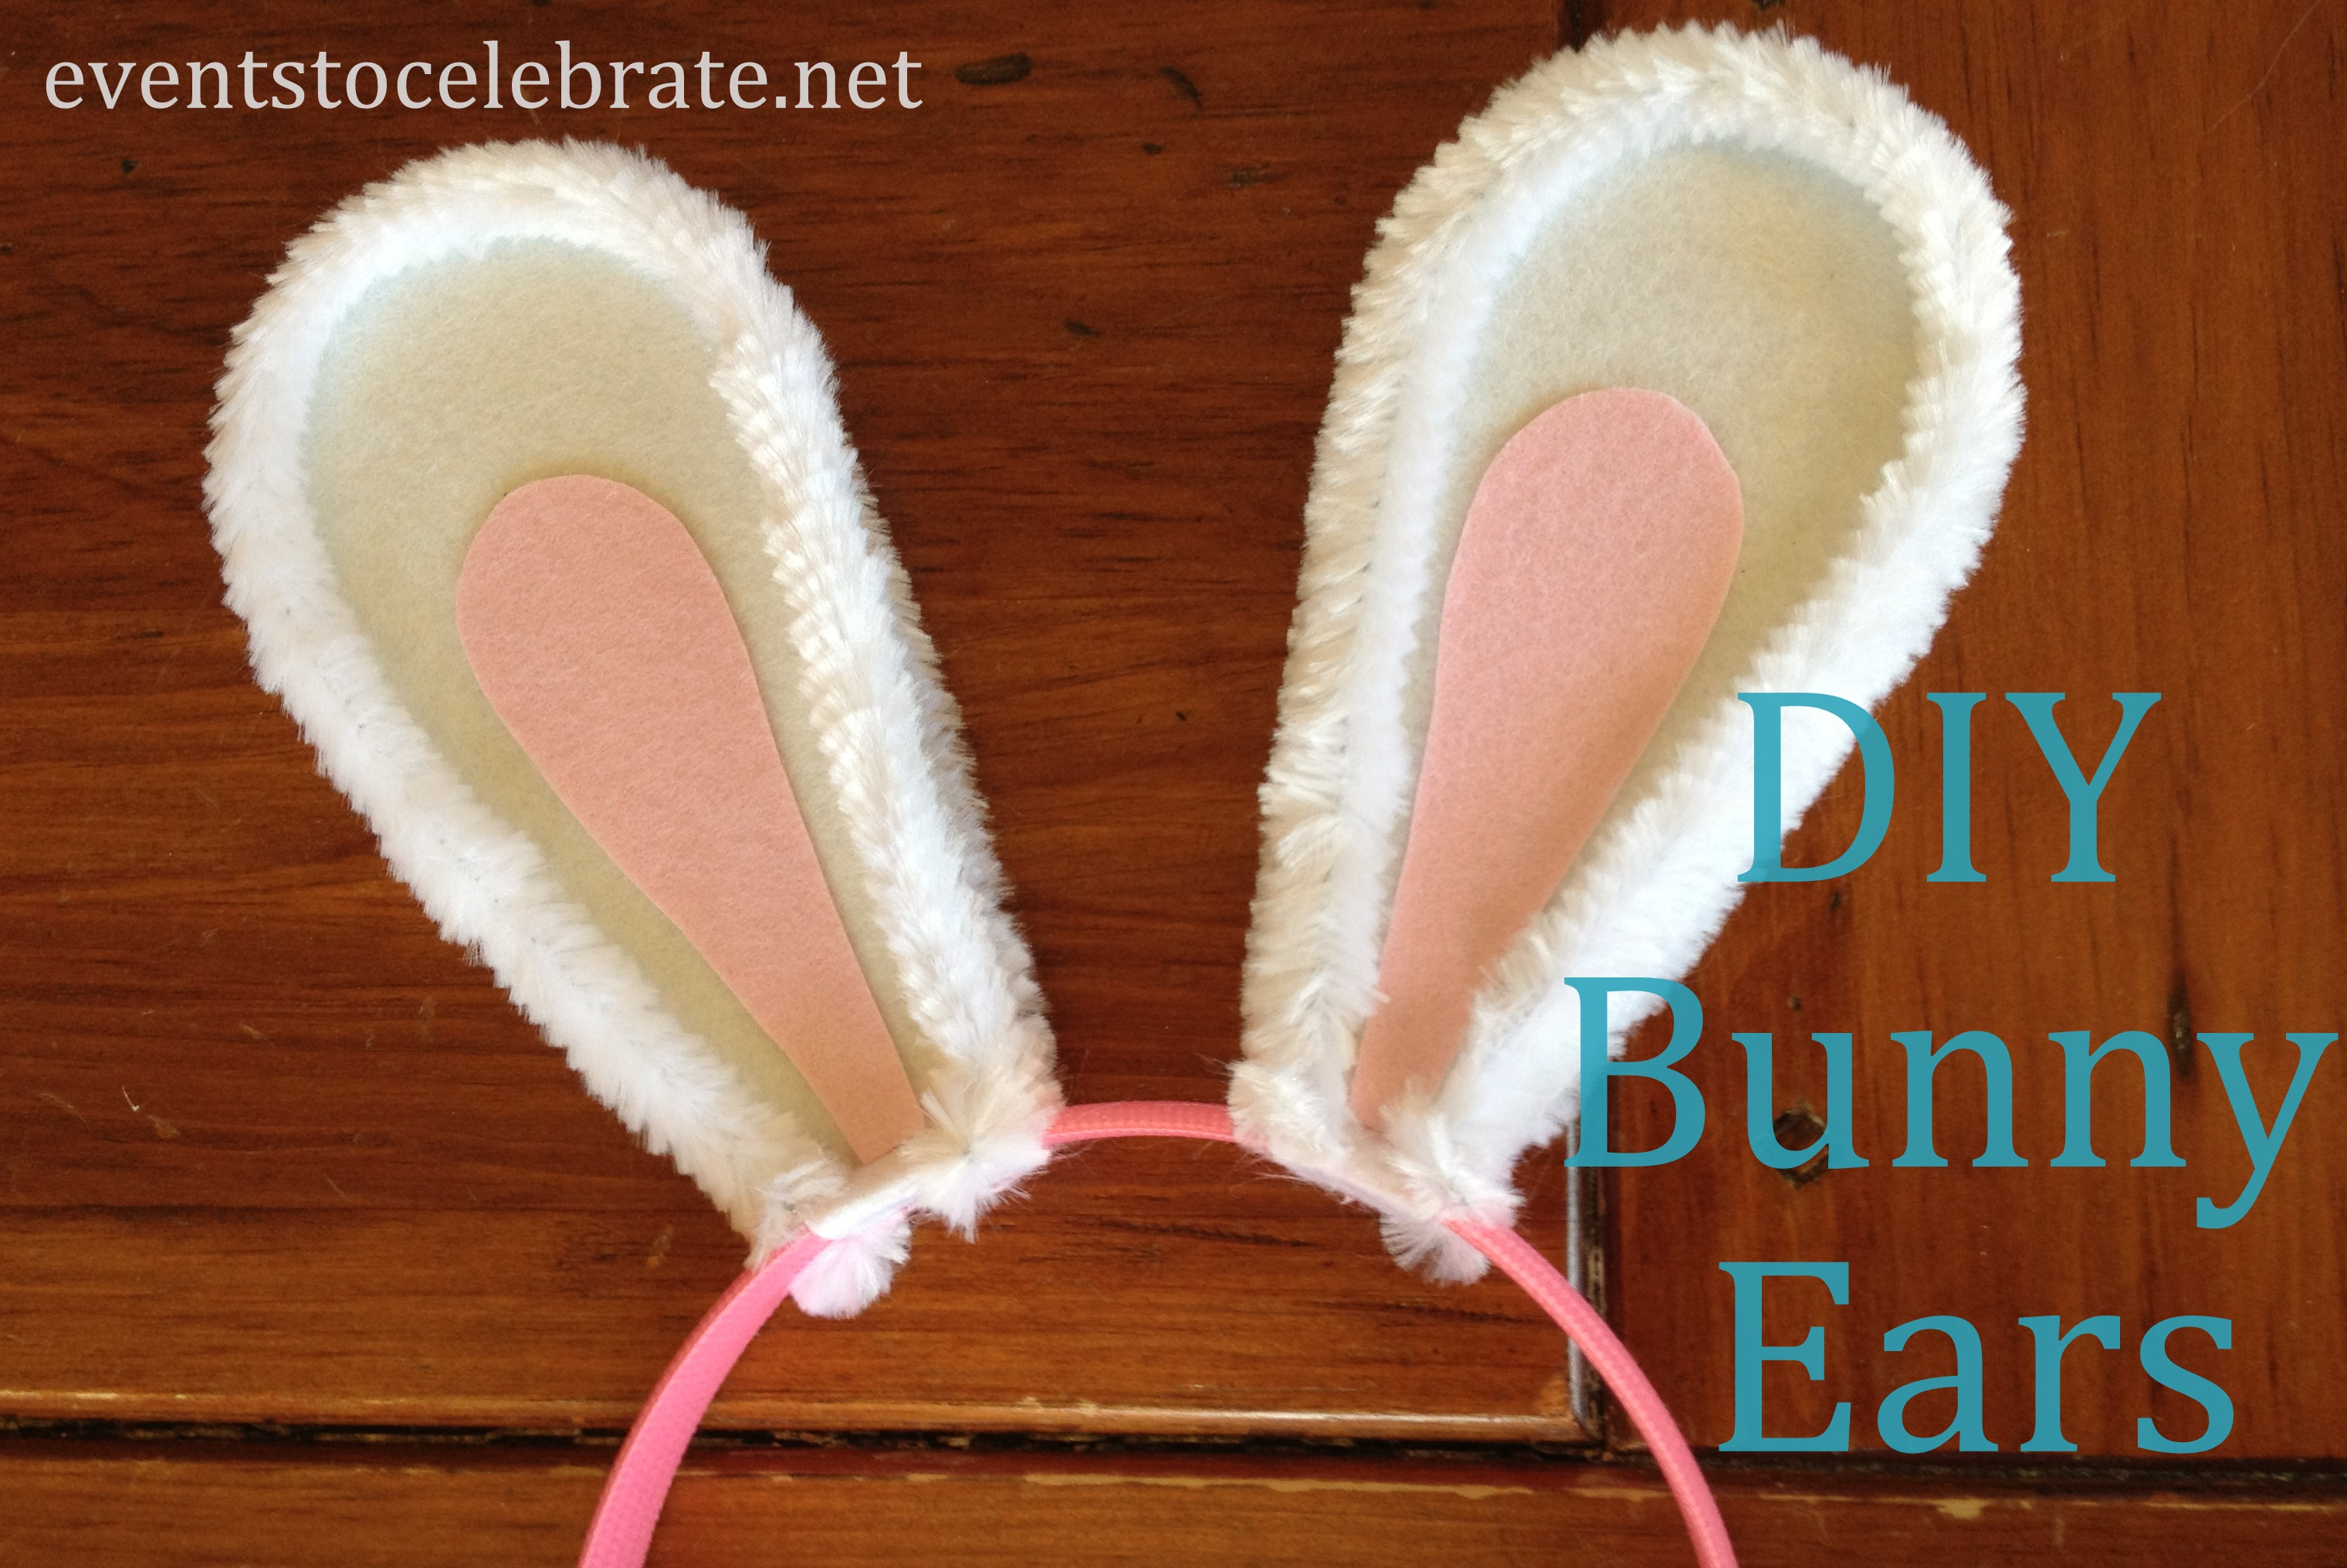 bunny ears headband template - easter crafts diy bunny ears events to celebrate